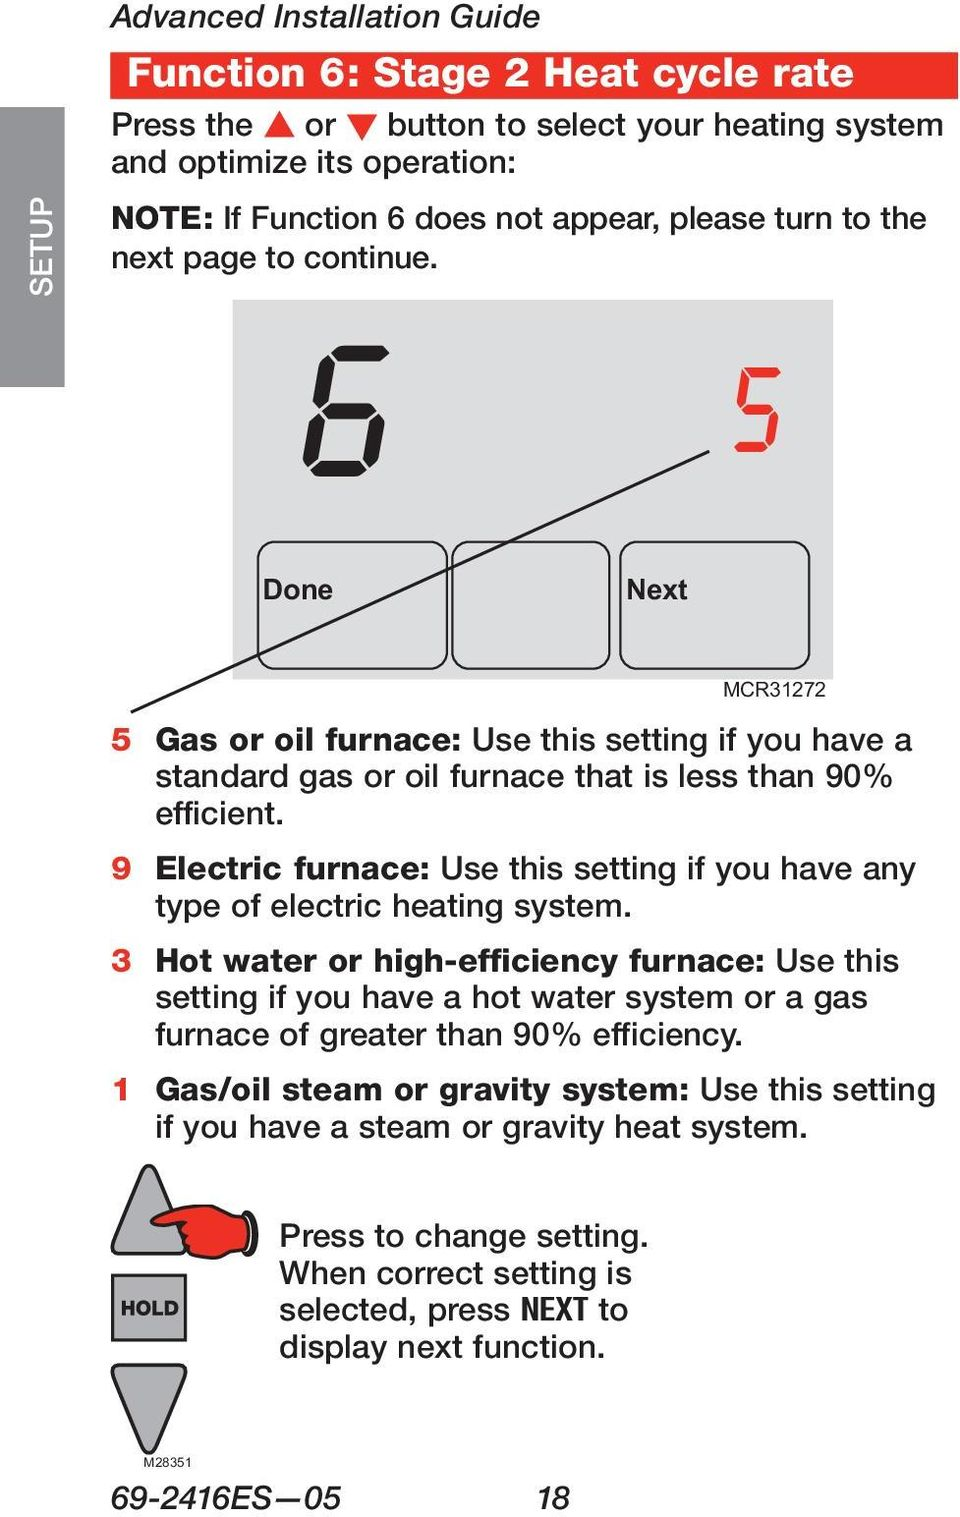 6 5 Done Next MCR31272 ASSISTANCE TROUBLESHOOTING 5 Gas or oil furnace: Use this setting if you have a standard gas or oil furnace that is less than 90% efficient.